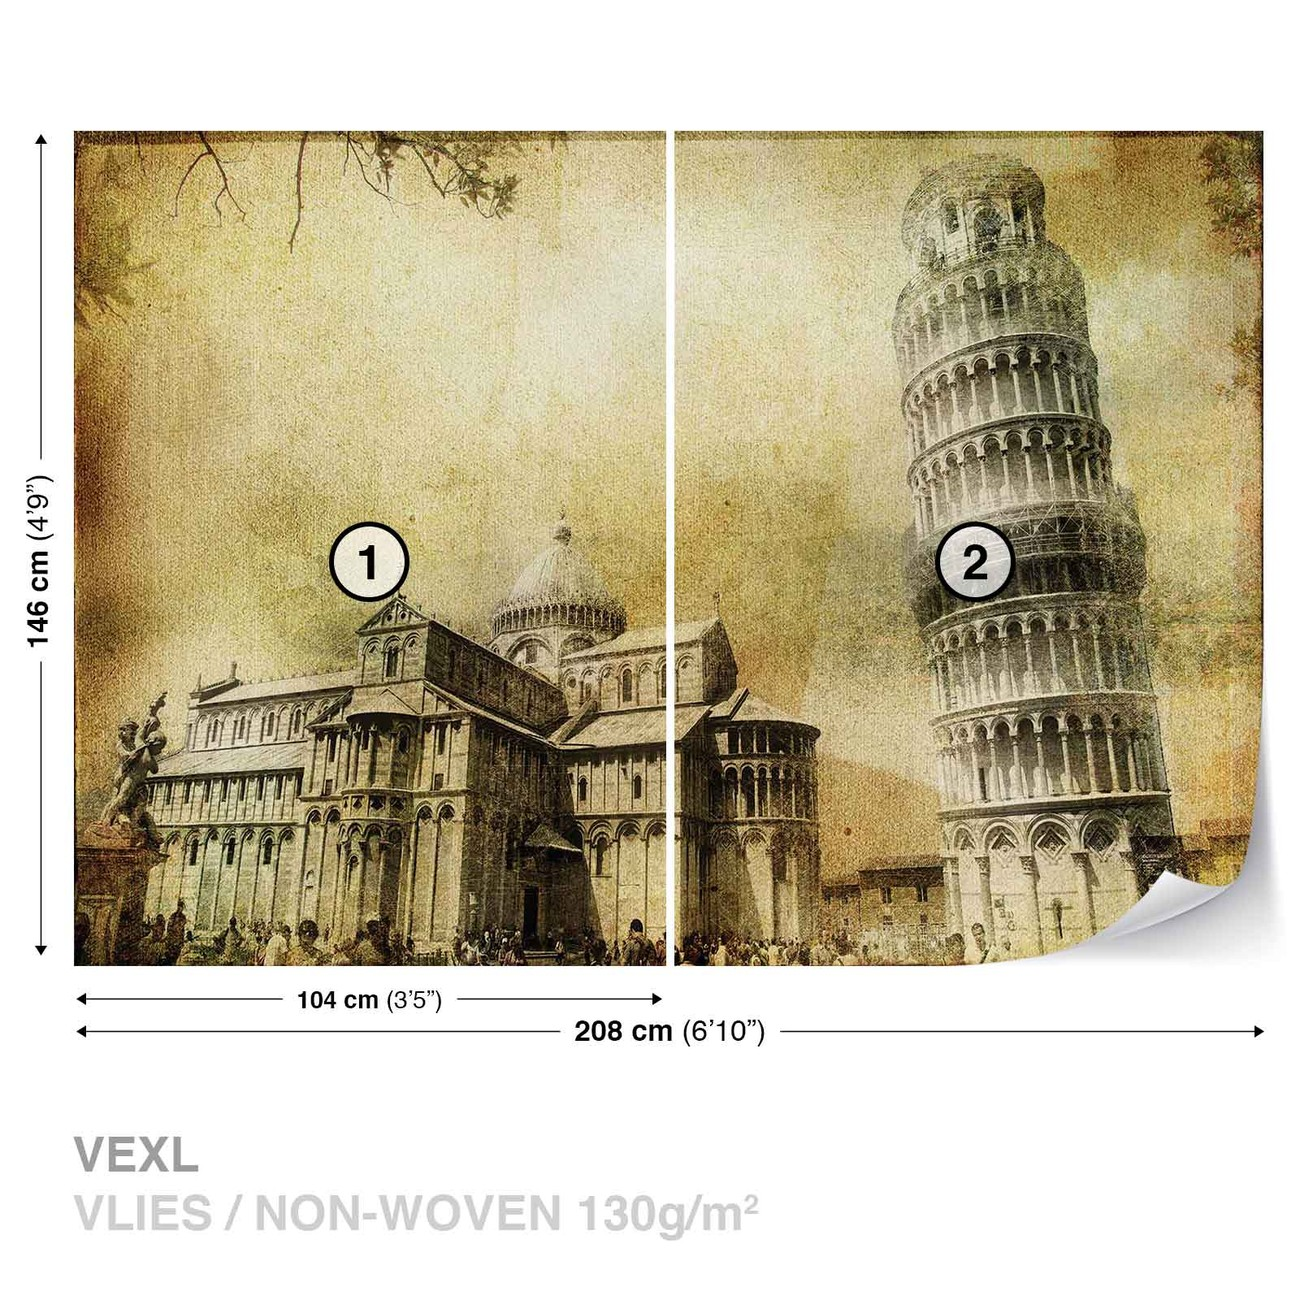 fototapete tapete pisa schiefer turm bei europosters kostenloser versand. Black Bedroom Furniture Sets. Home Design Ideas